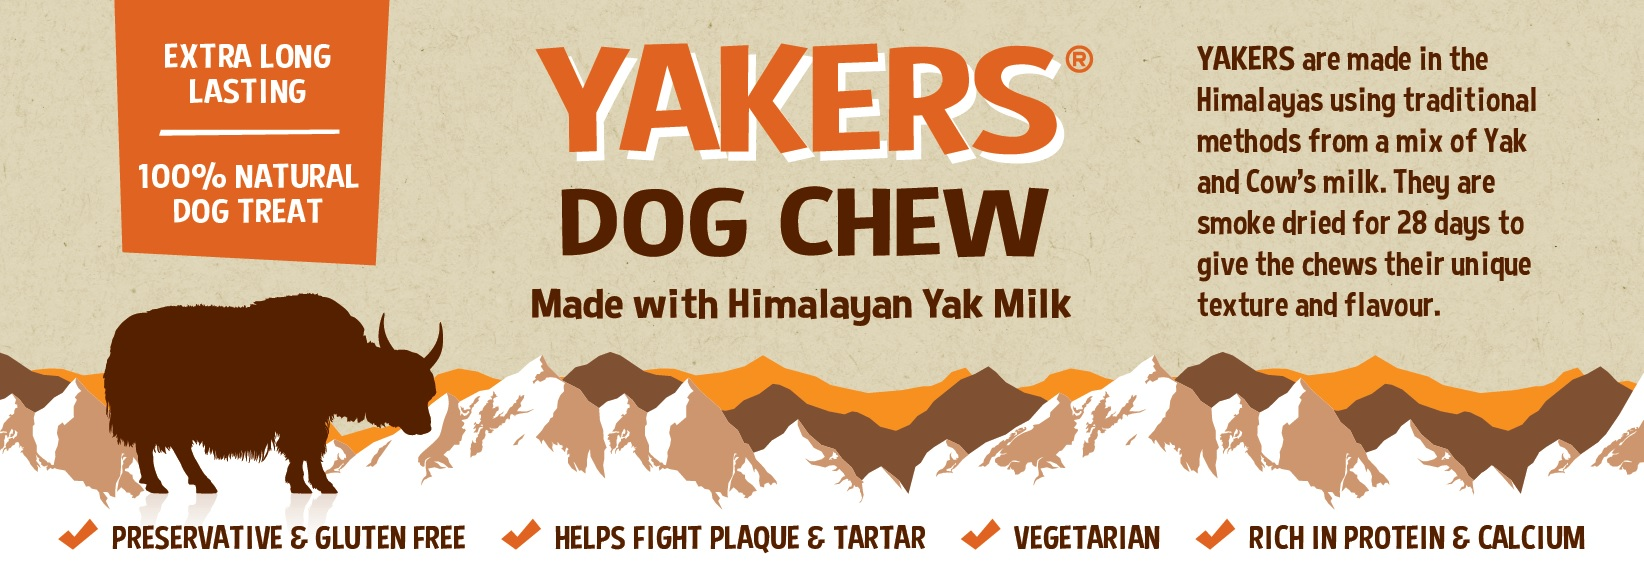 YAKERS Dog Chews